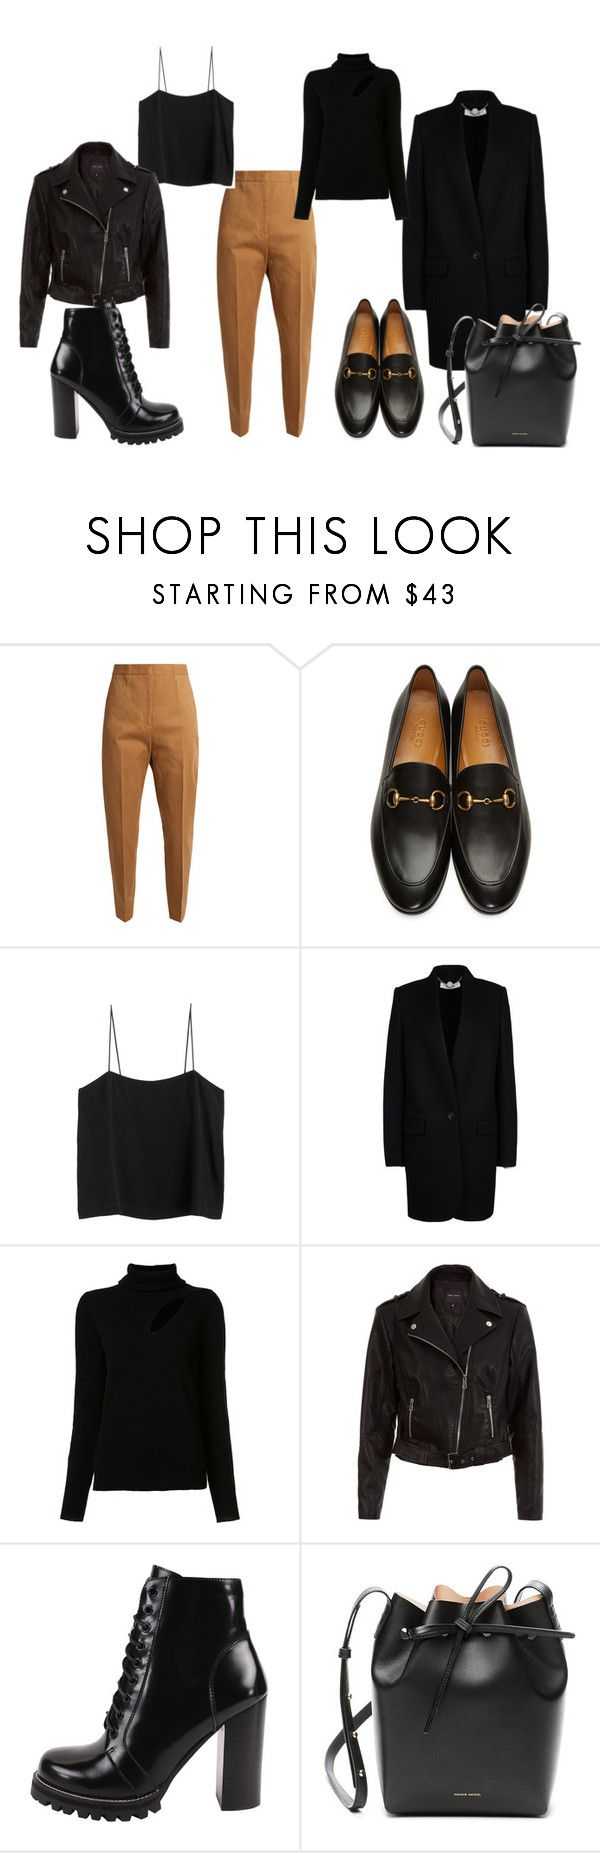 """N"" by alena-mendesh on Polyvore featuring мода, Jil Sander, Gucci, STELLA McCARTNEY, A.L.C., New Look, Jeffrey Campbell и Mansur Gavriel"